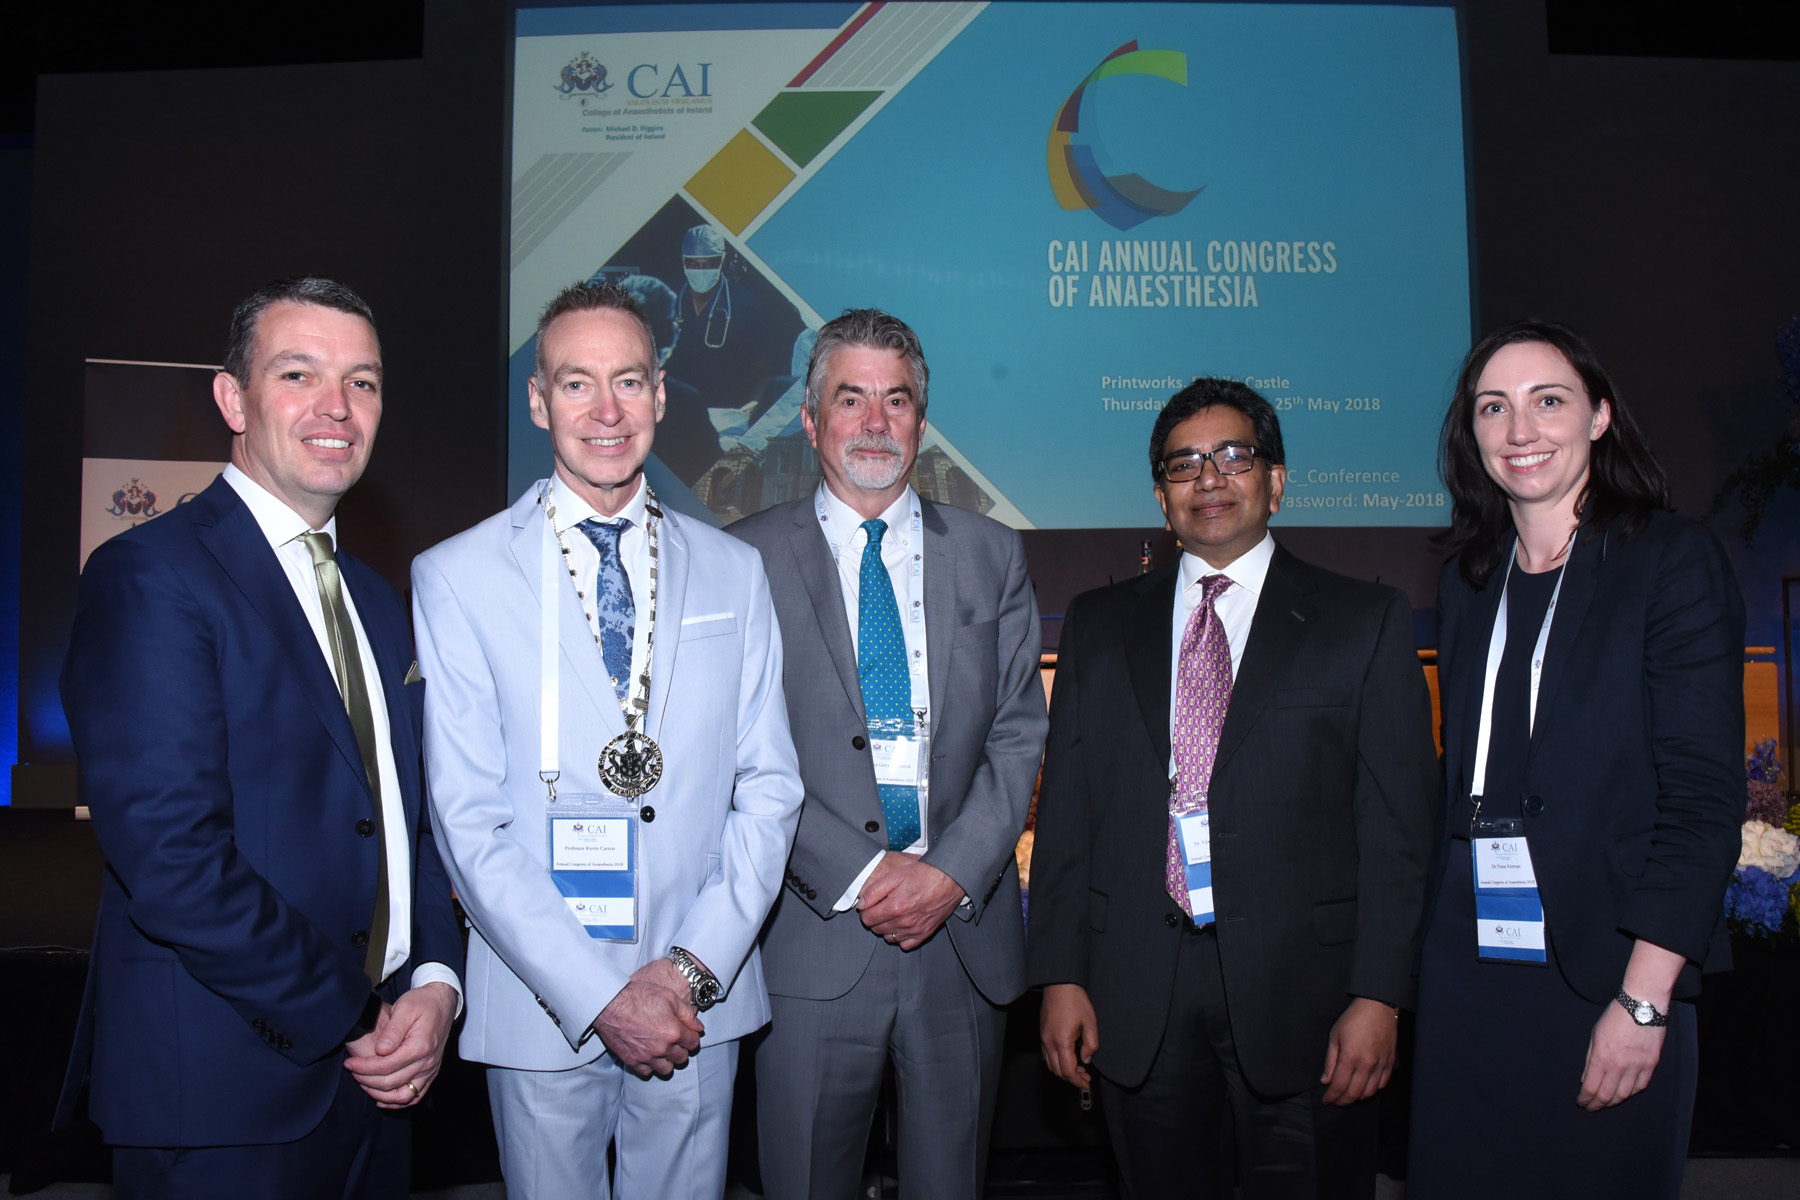 College of Anaesthetists of Ireland Annual Congress 2018 - Mr Martin McCormack, CEO, CAI, Prof Kevin Carson, Prof Gerry Fitzpatrick, Dr Vijay Gottummukkala and Dr Fiona Kiernan,